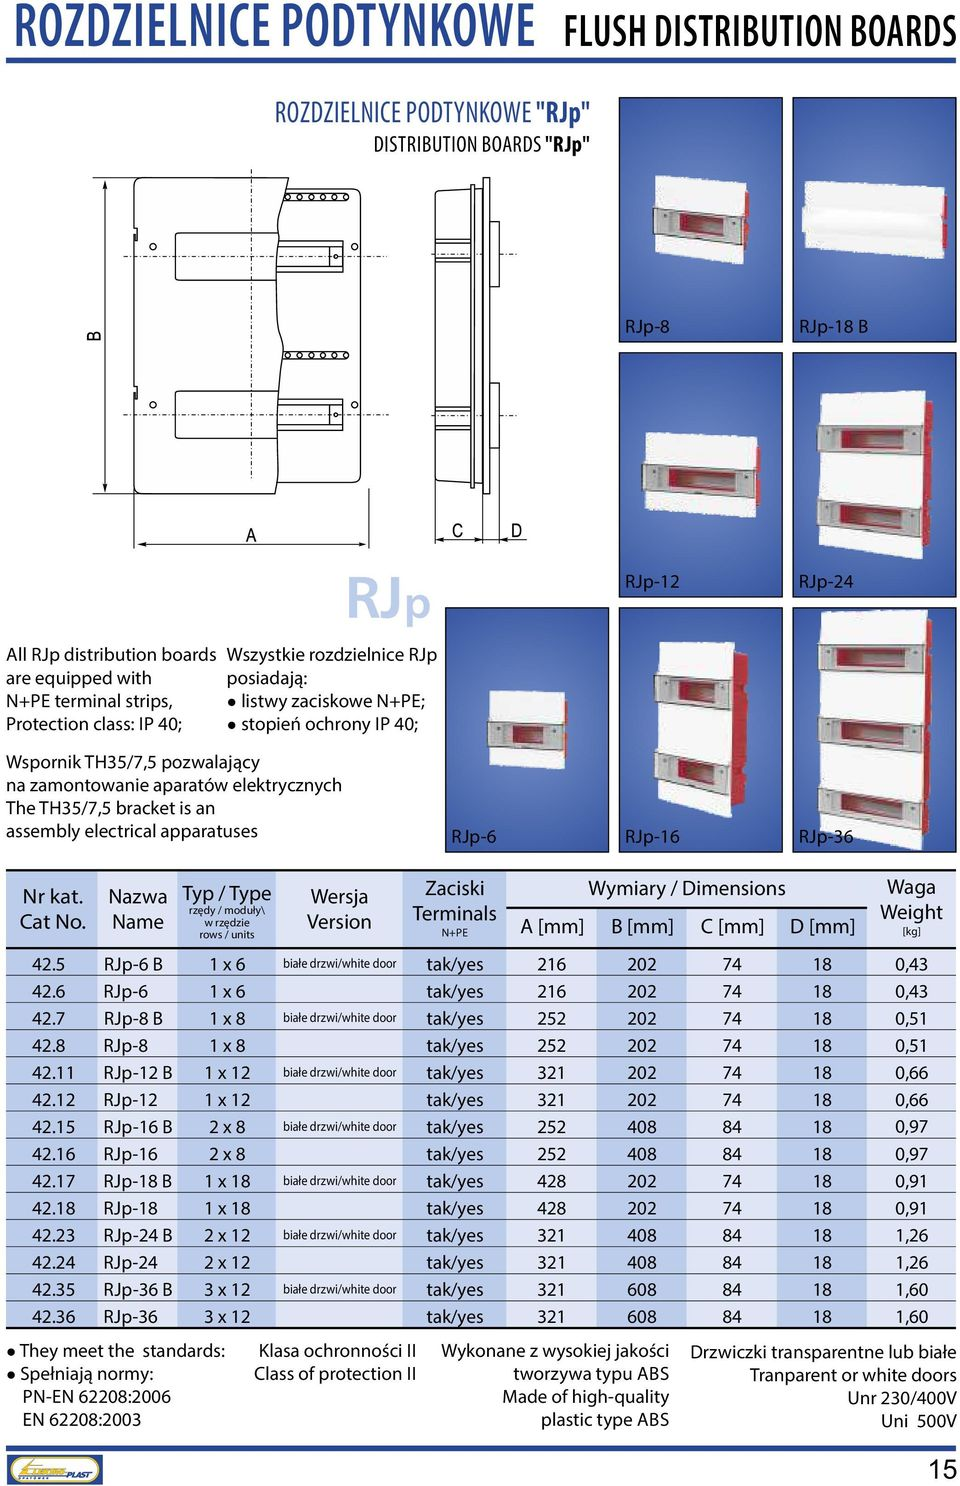 bracket is an assembly electrical apparatuses RJp-6 RJp-16 RJp-36 42.5 42.6 42.7 42.8 42.11 42.12 42.15 42.16 42.17 42.18 42.23 42.24 42.35 42.